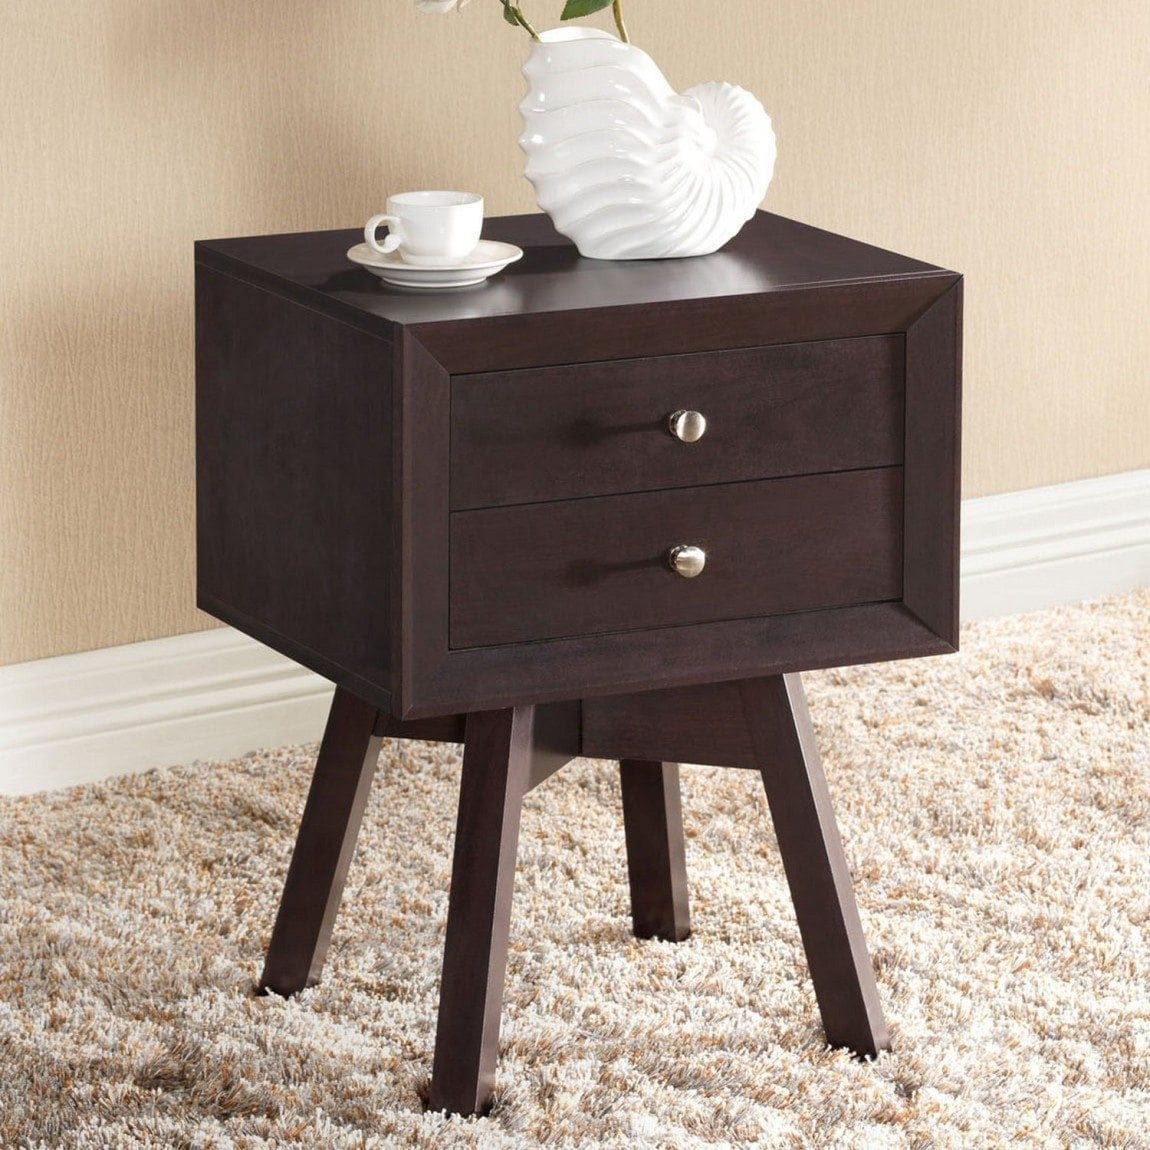 Baxton Studio Warwick Modern Accent Table and Nightstand, Brown